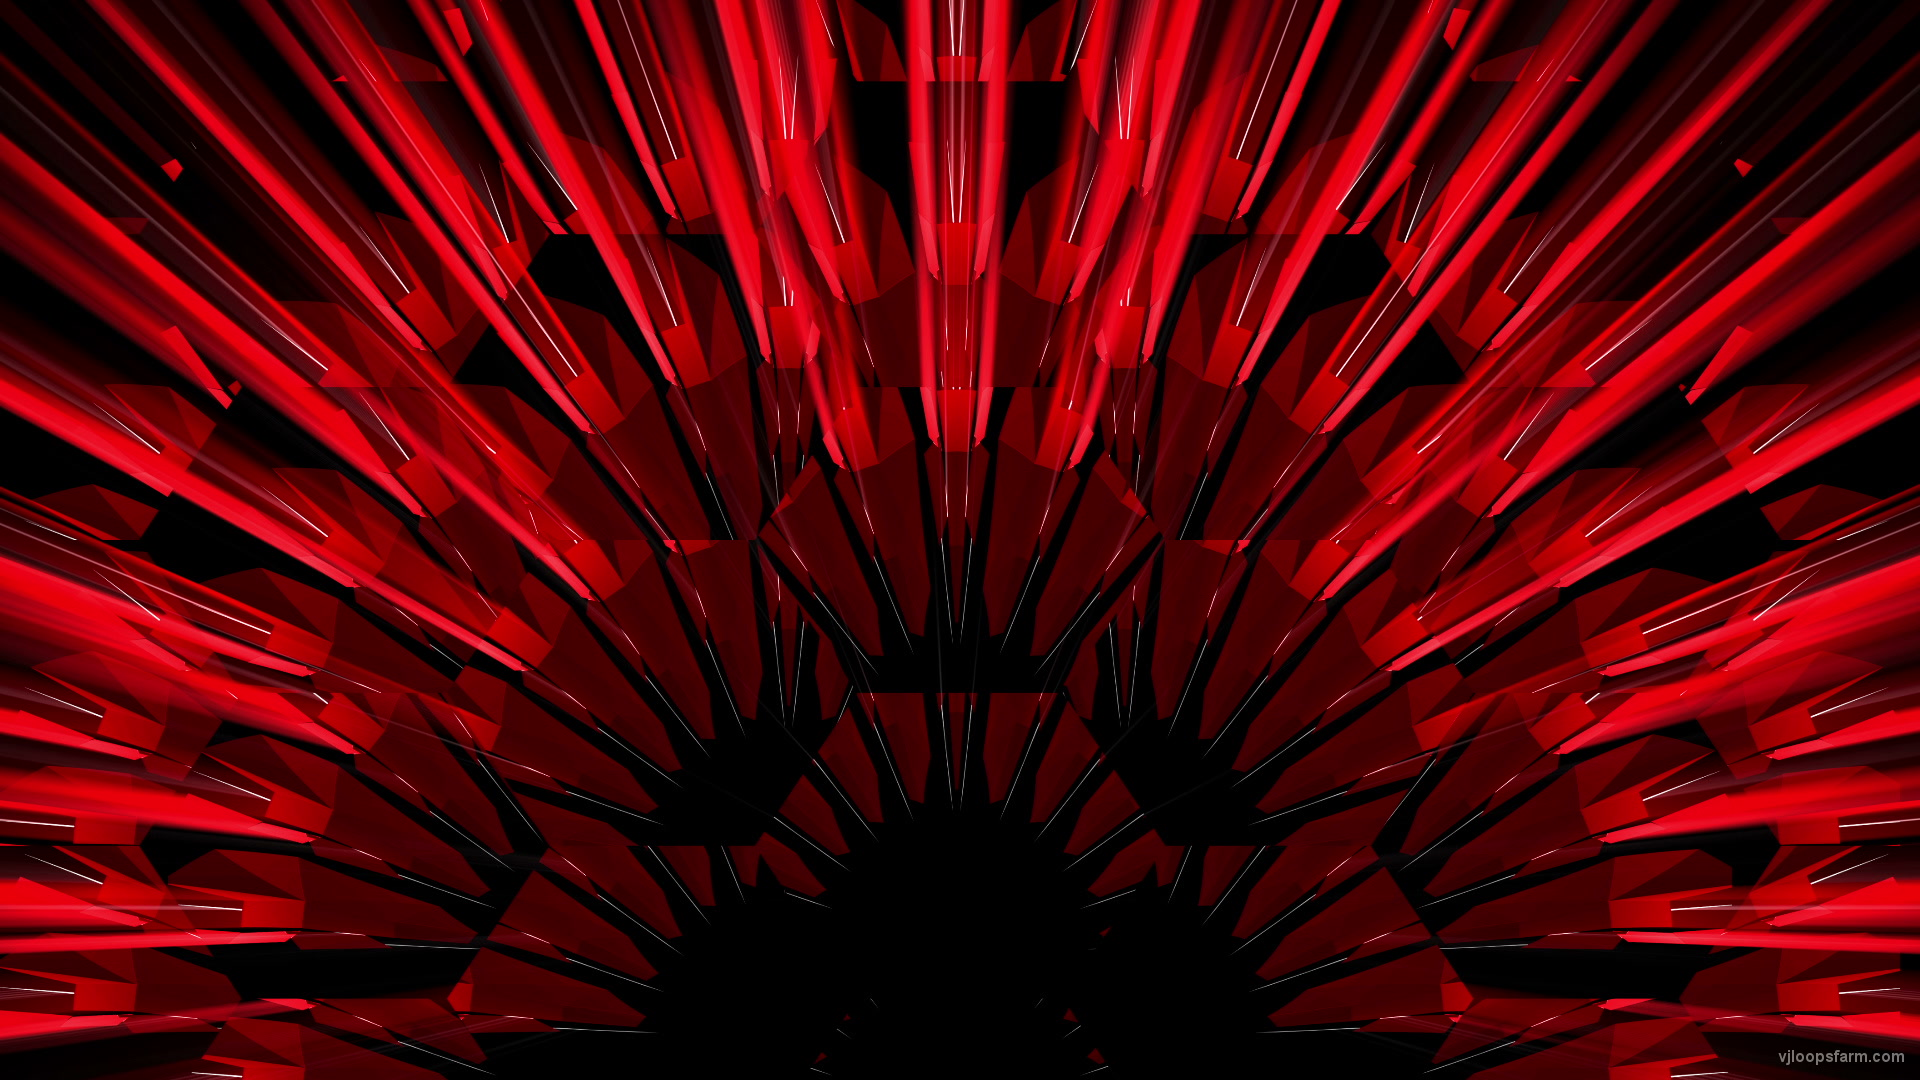 vj video background Heartbeat-Flashes-X2_1920x1080_29fps_VJLoop_LIMEART_003